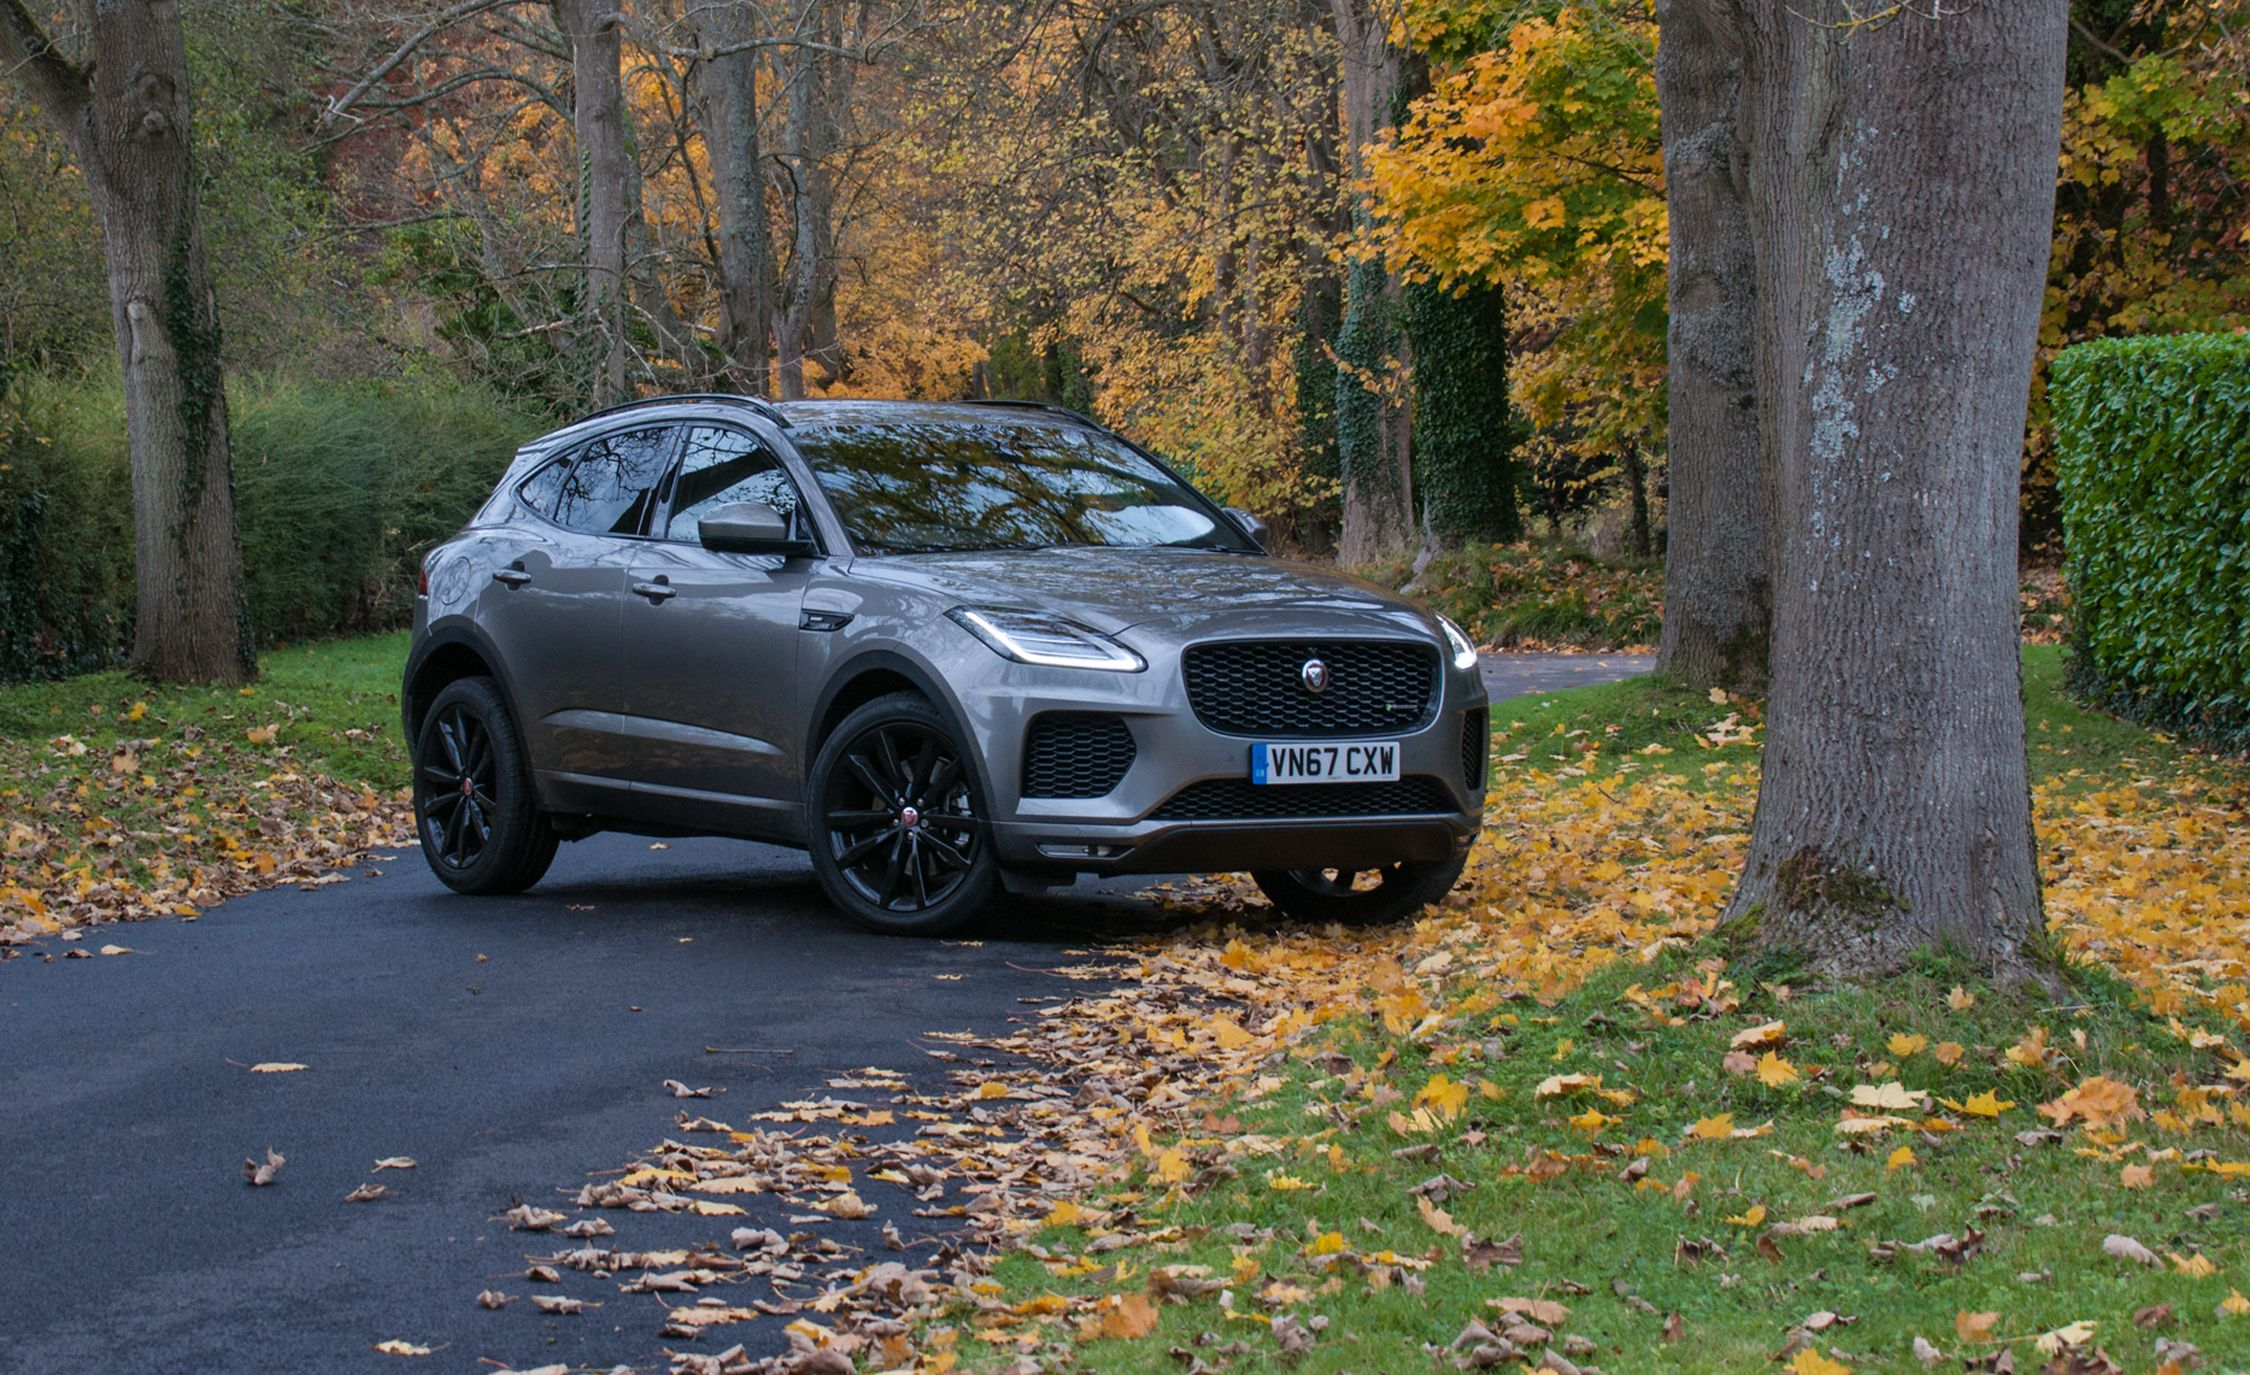 2018 Jaguar E Pace Review Price >> 2018 Jaguar E Pace Crossover First Drive Review Car And Driver